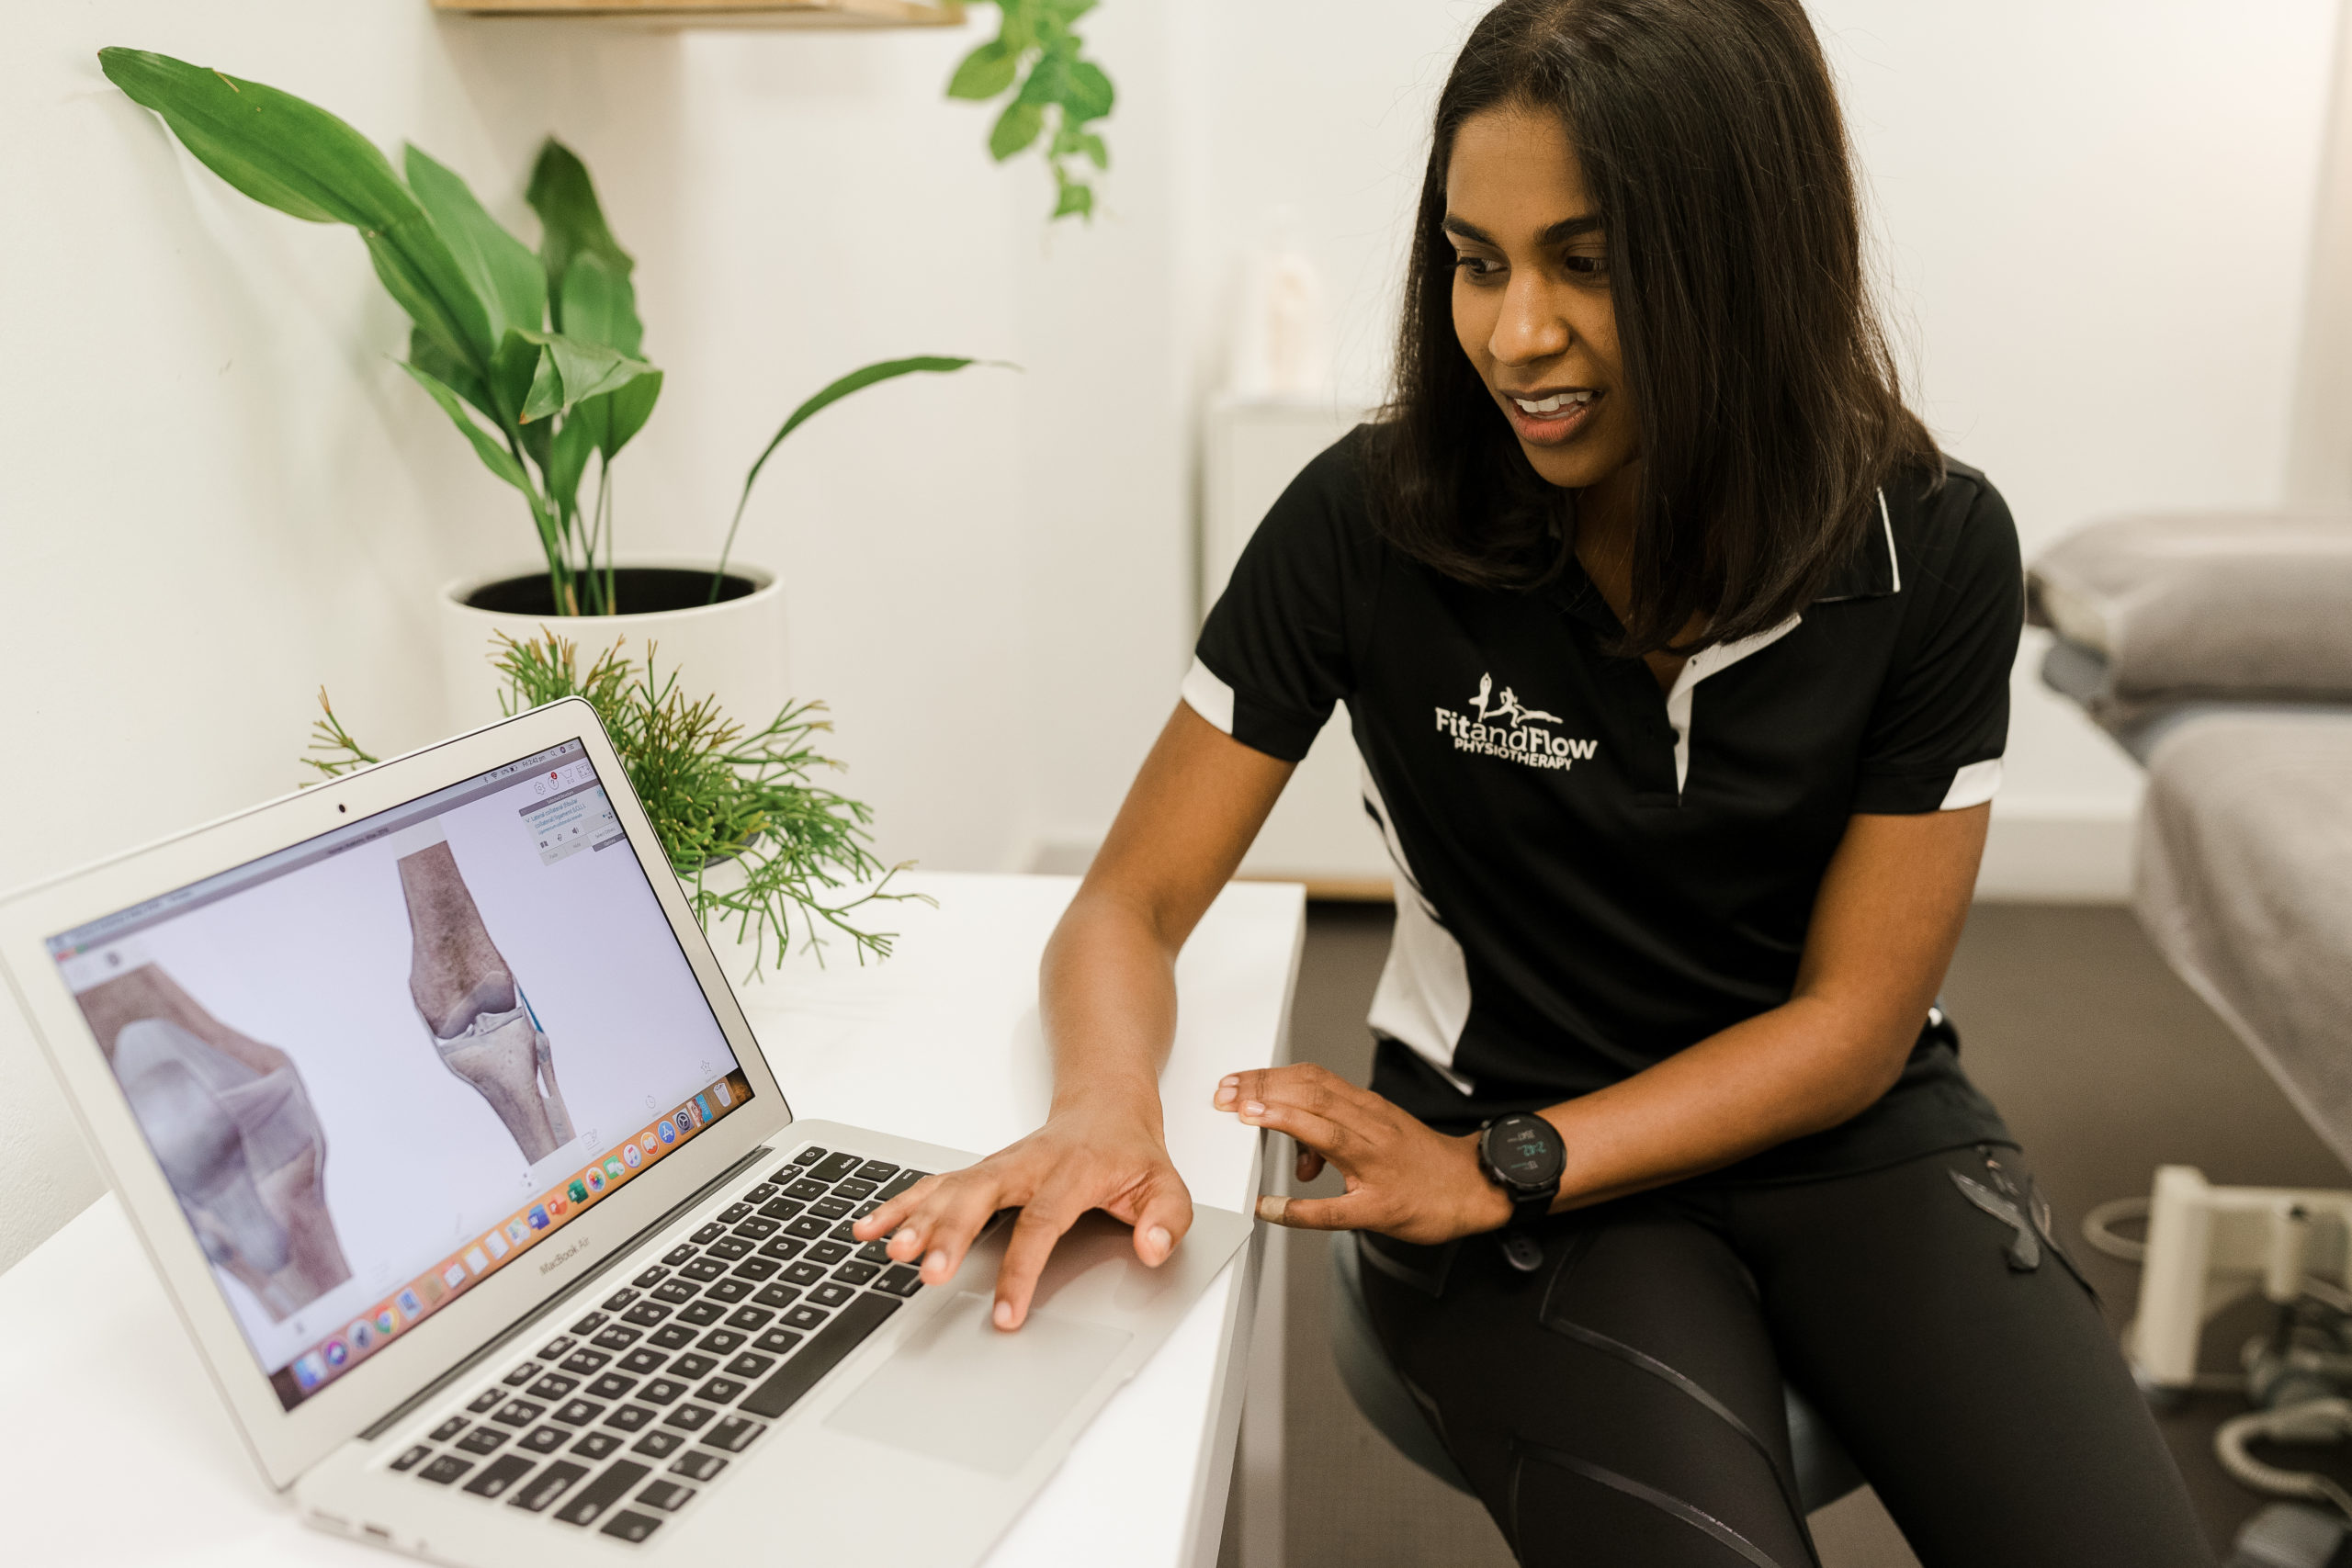 Caringbah Physio Patient Resources